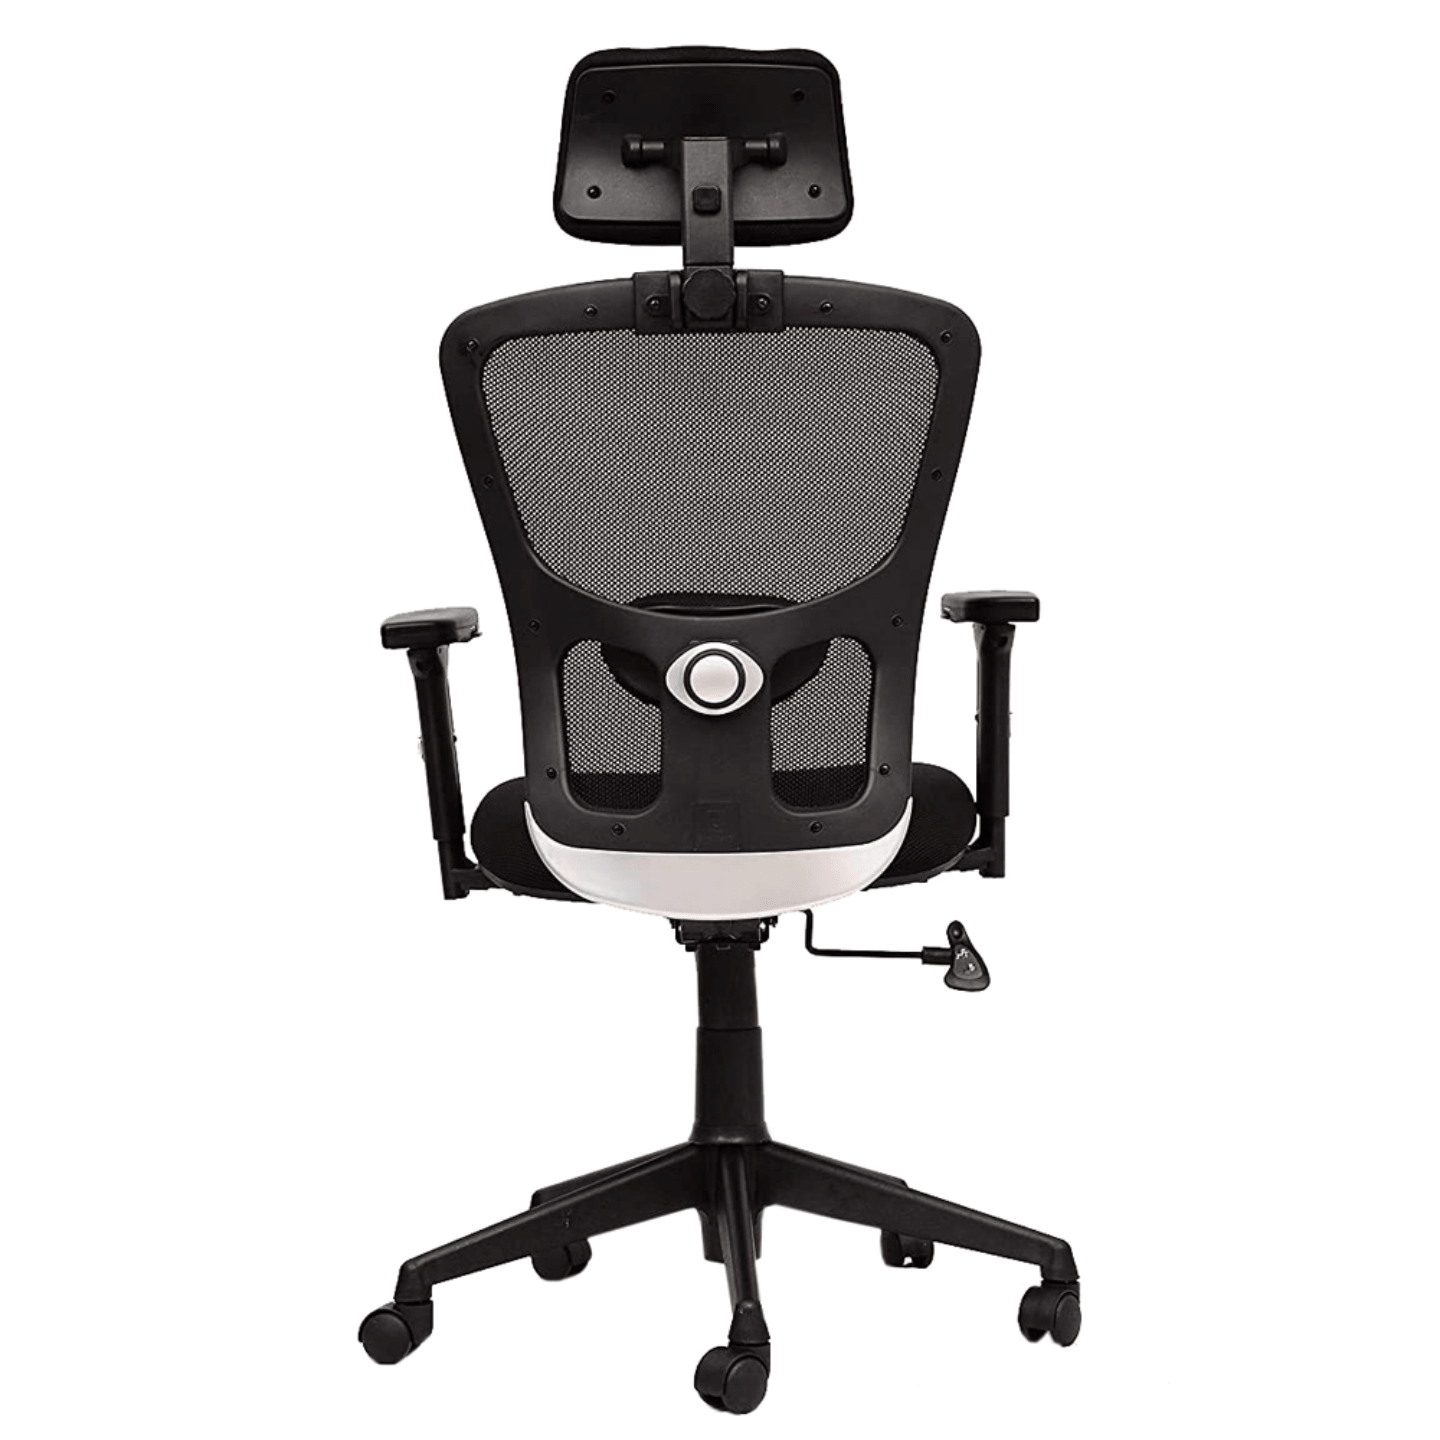 Work from Home Chair AMU HB Office Chair